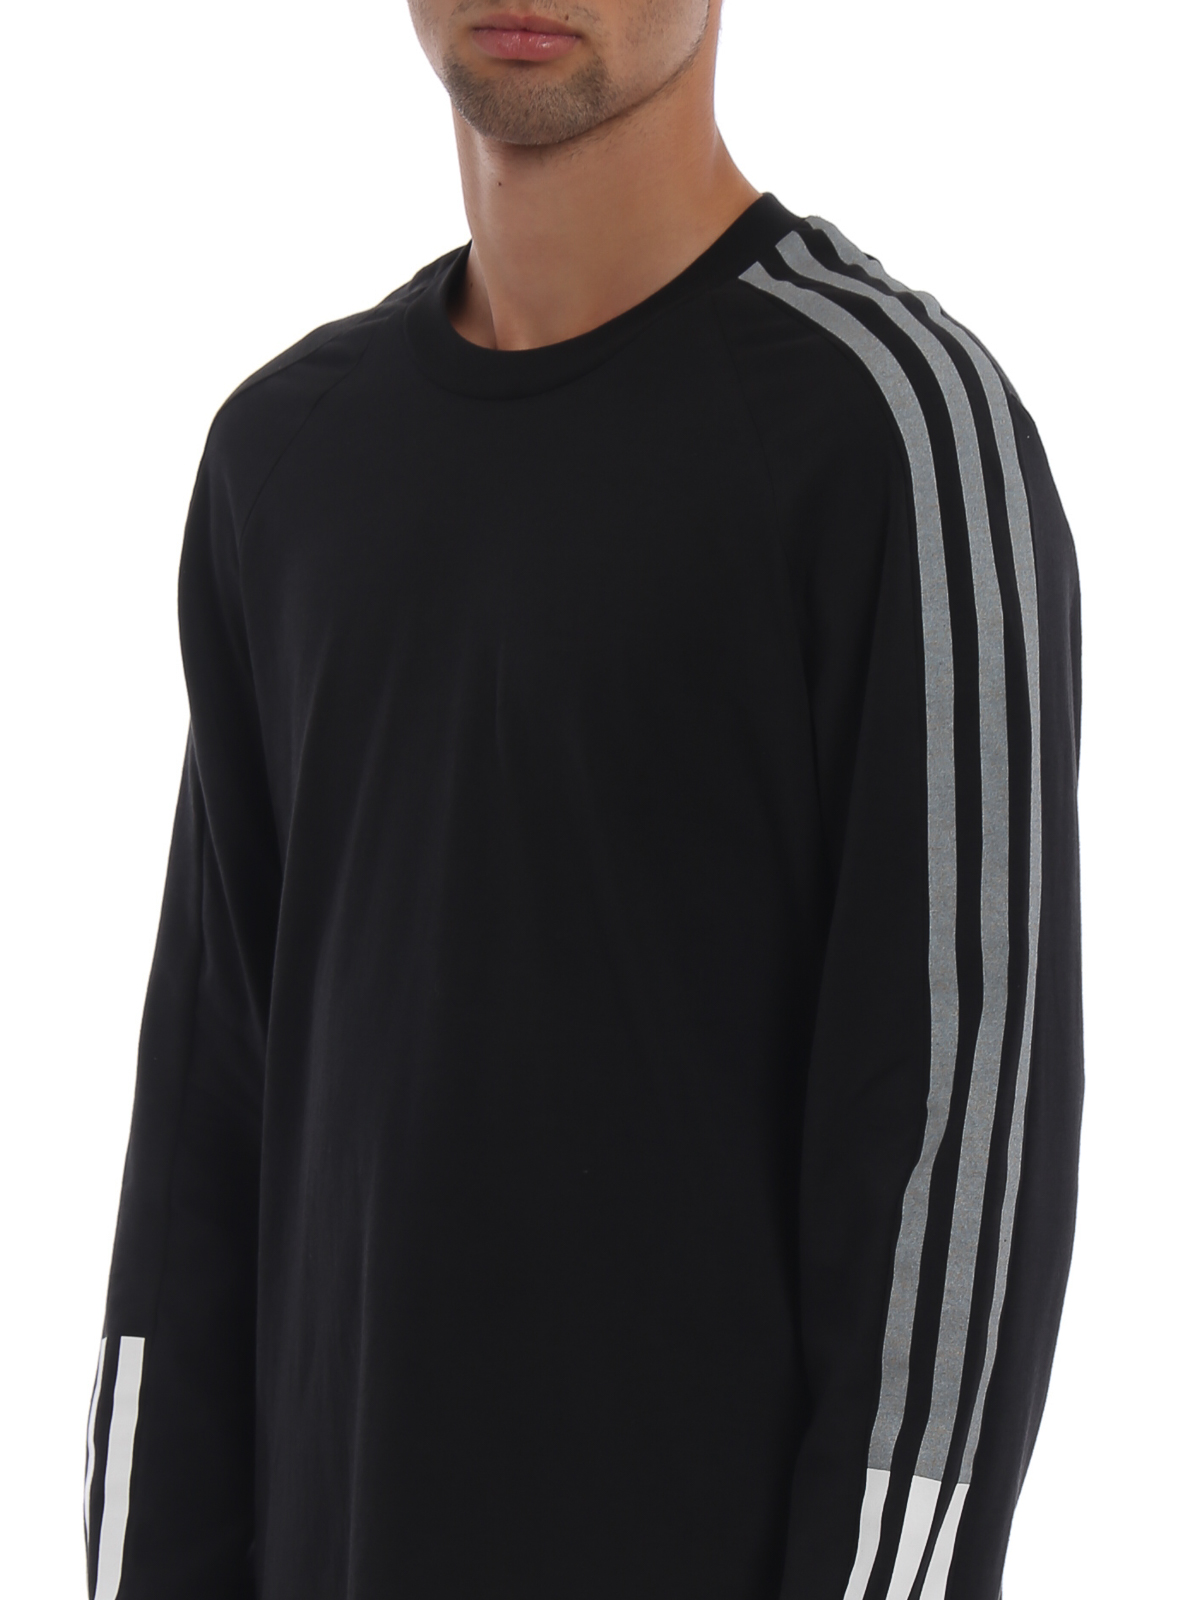 f525da0caf6 Adidas Y-3 - 3-Stripes Tee long sleeves black T-shirt - t-shirts ...